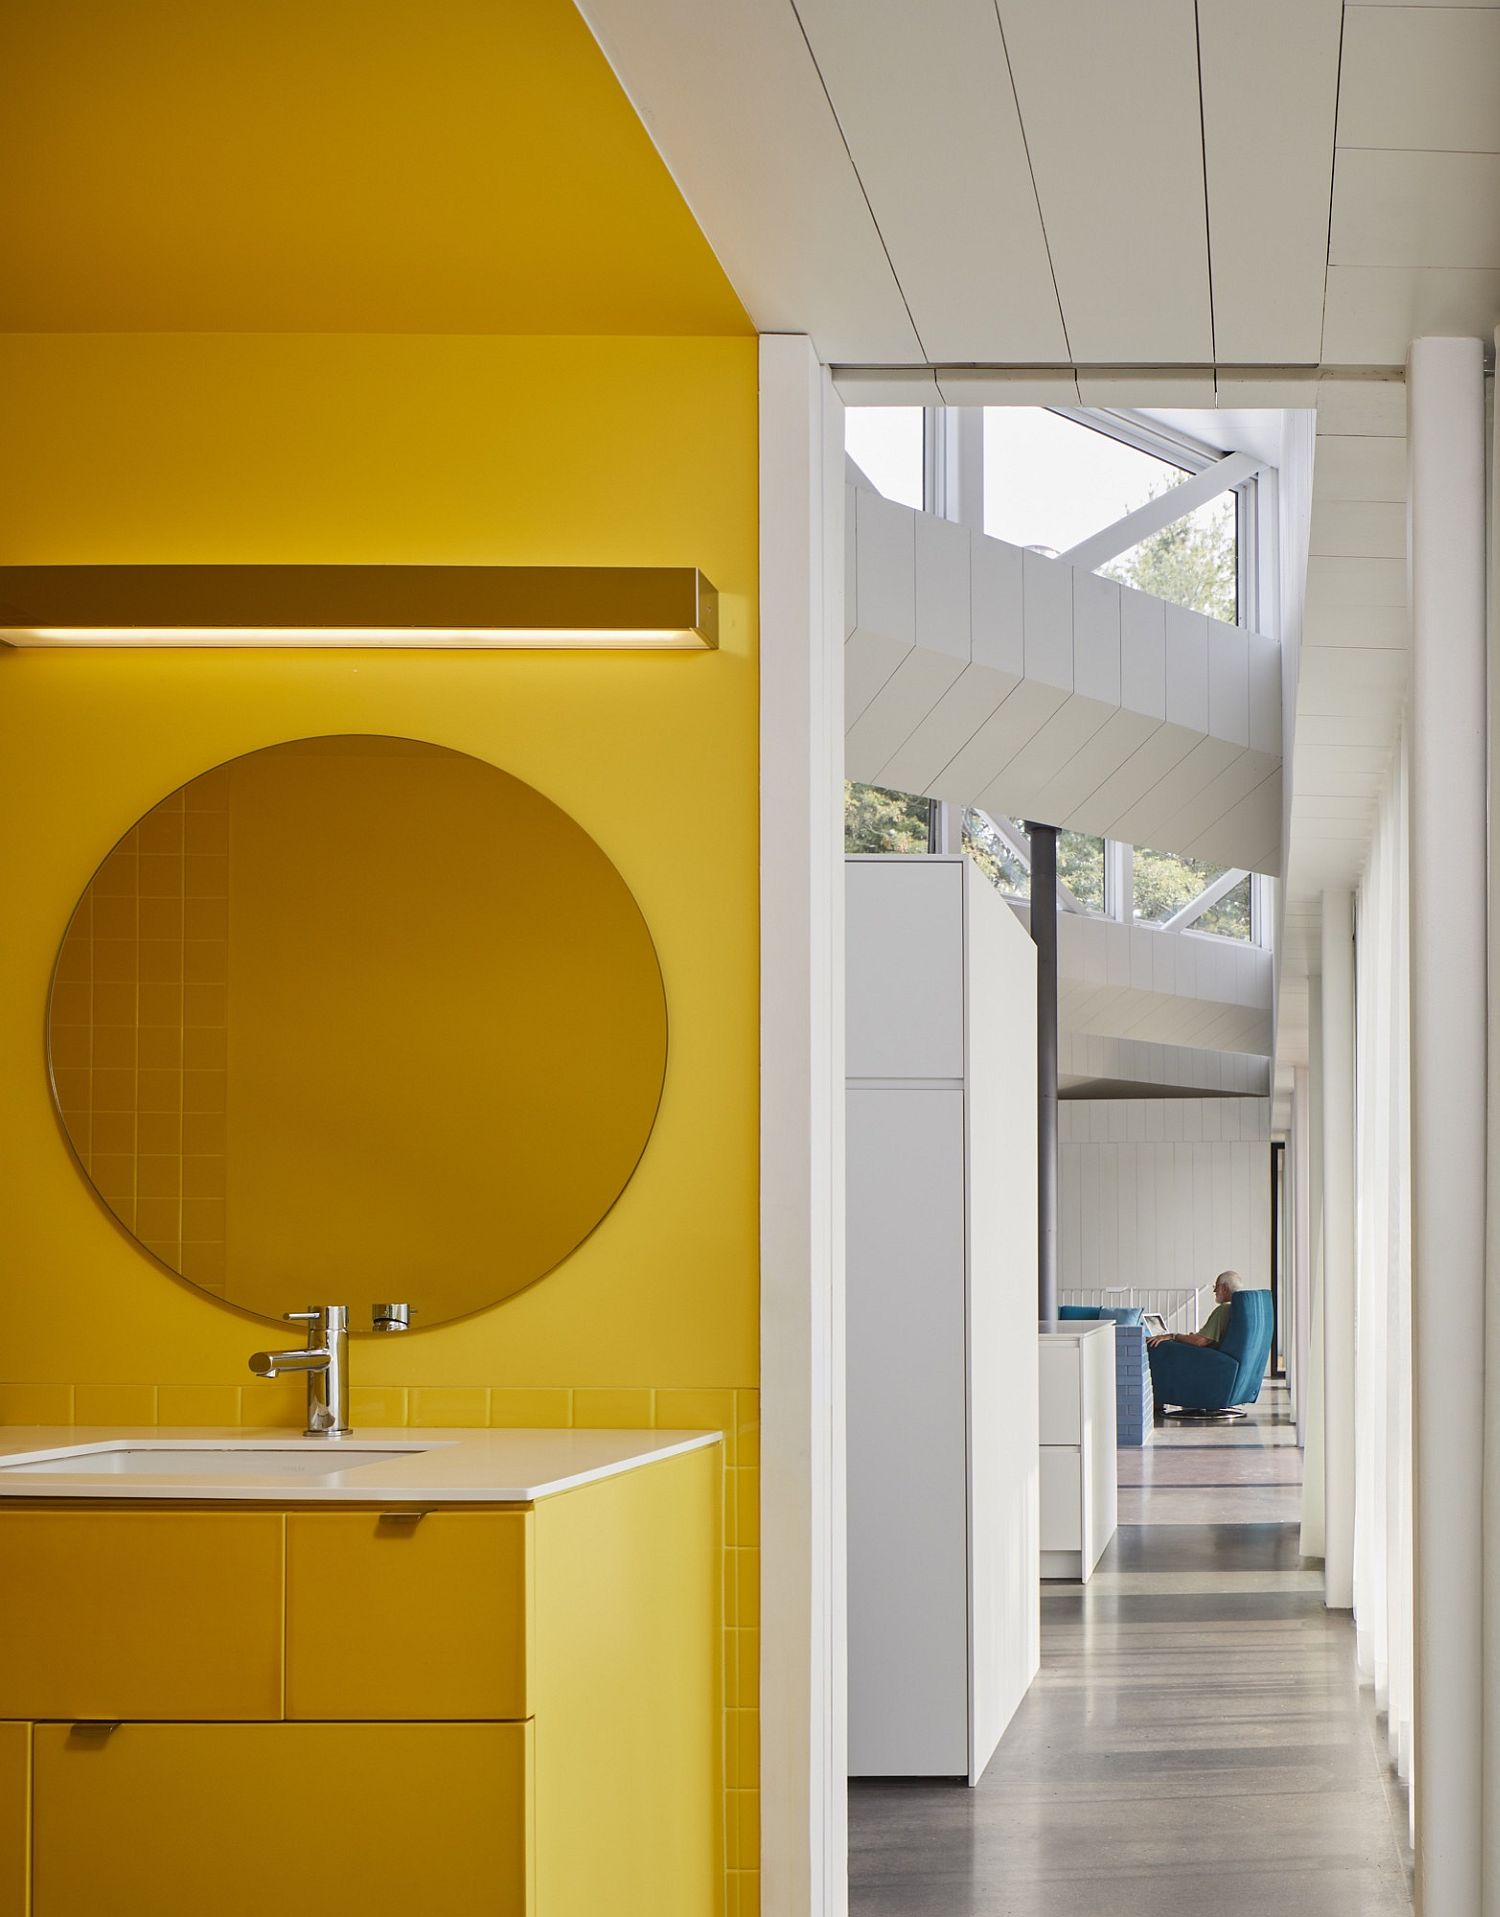 Bright-yellow-walls-bring-lively-elegance-to-the-interior